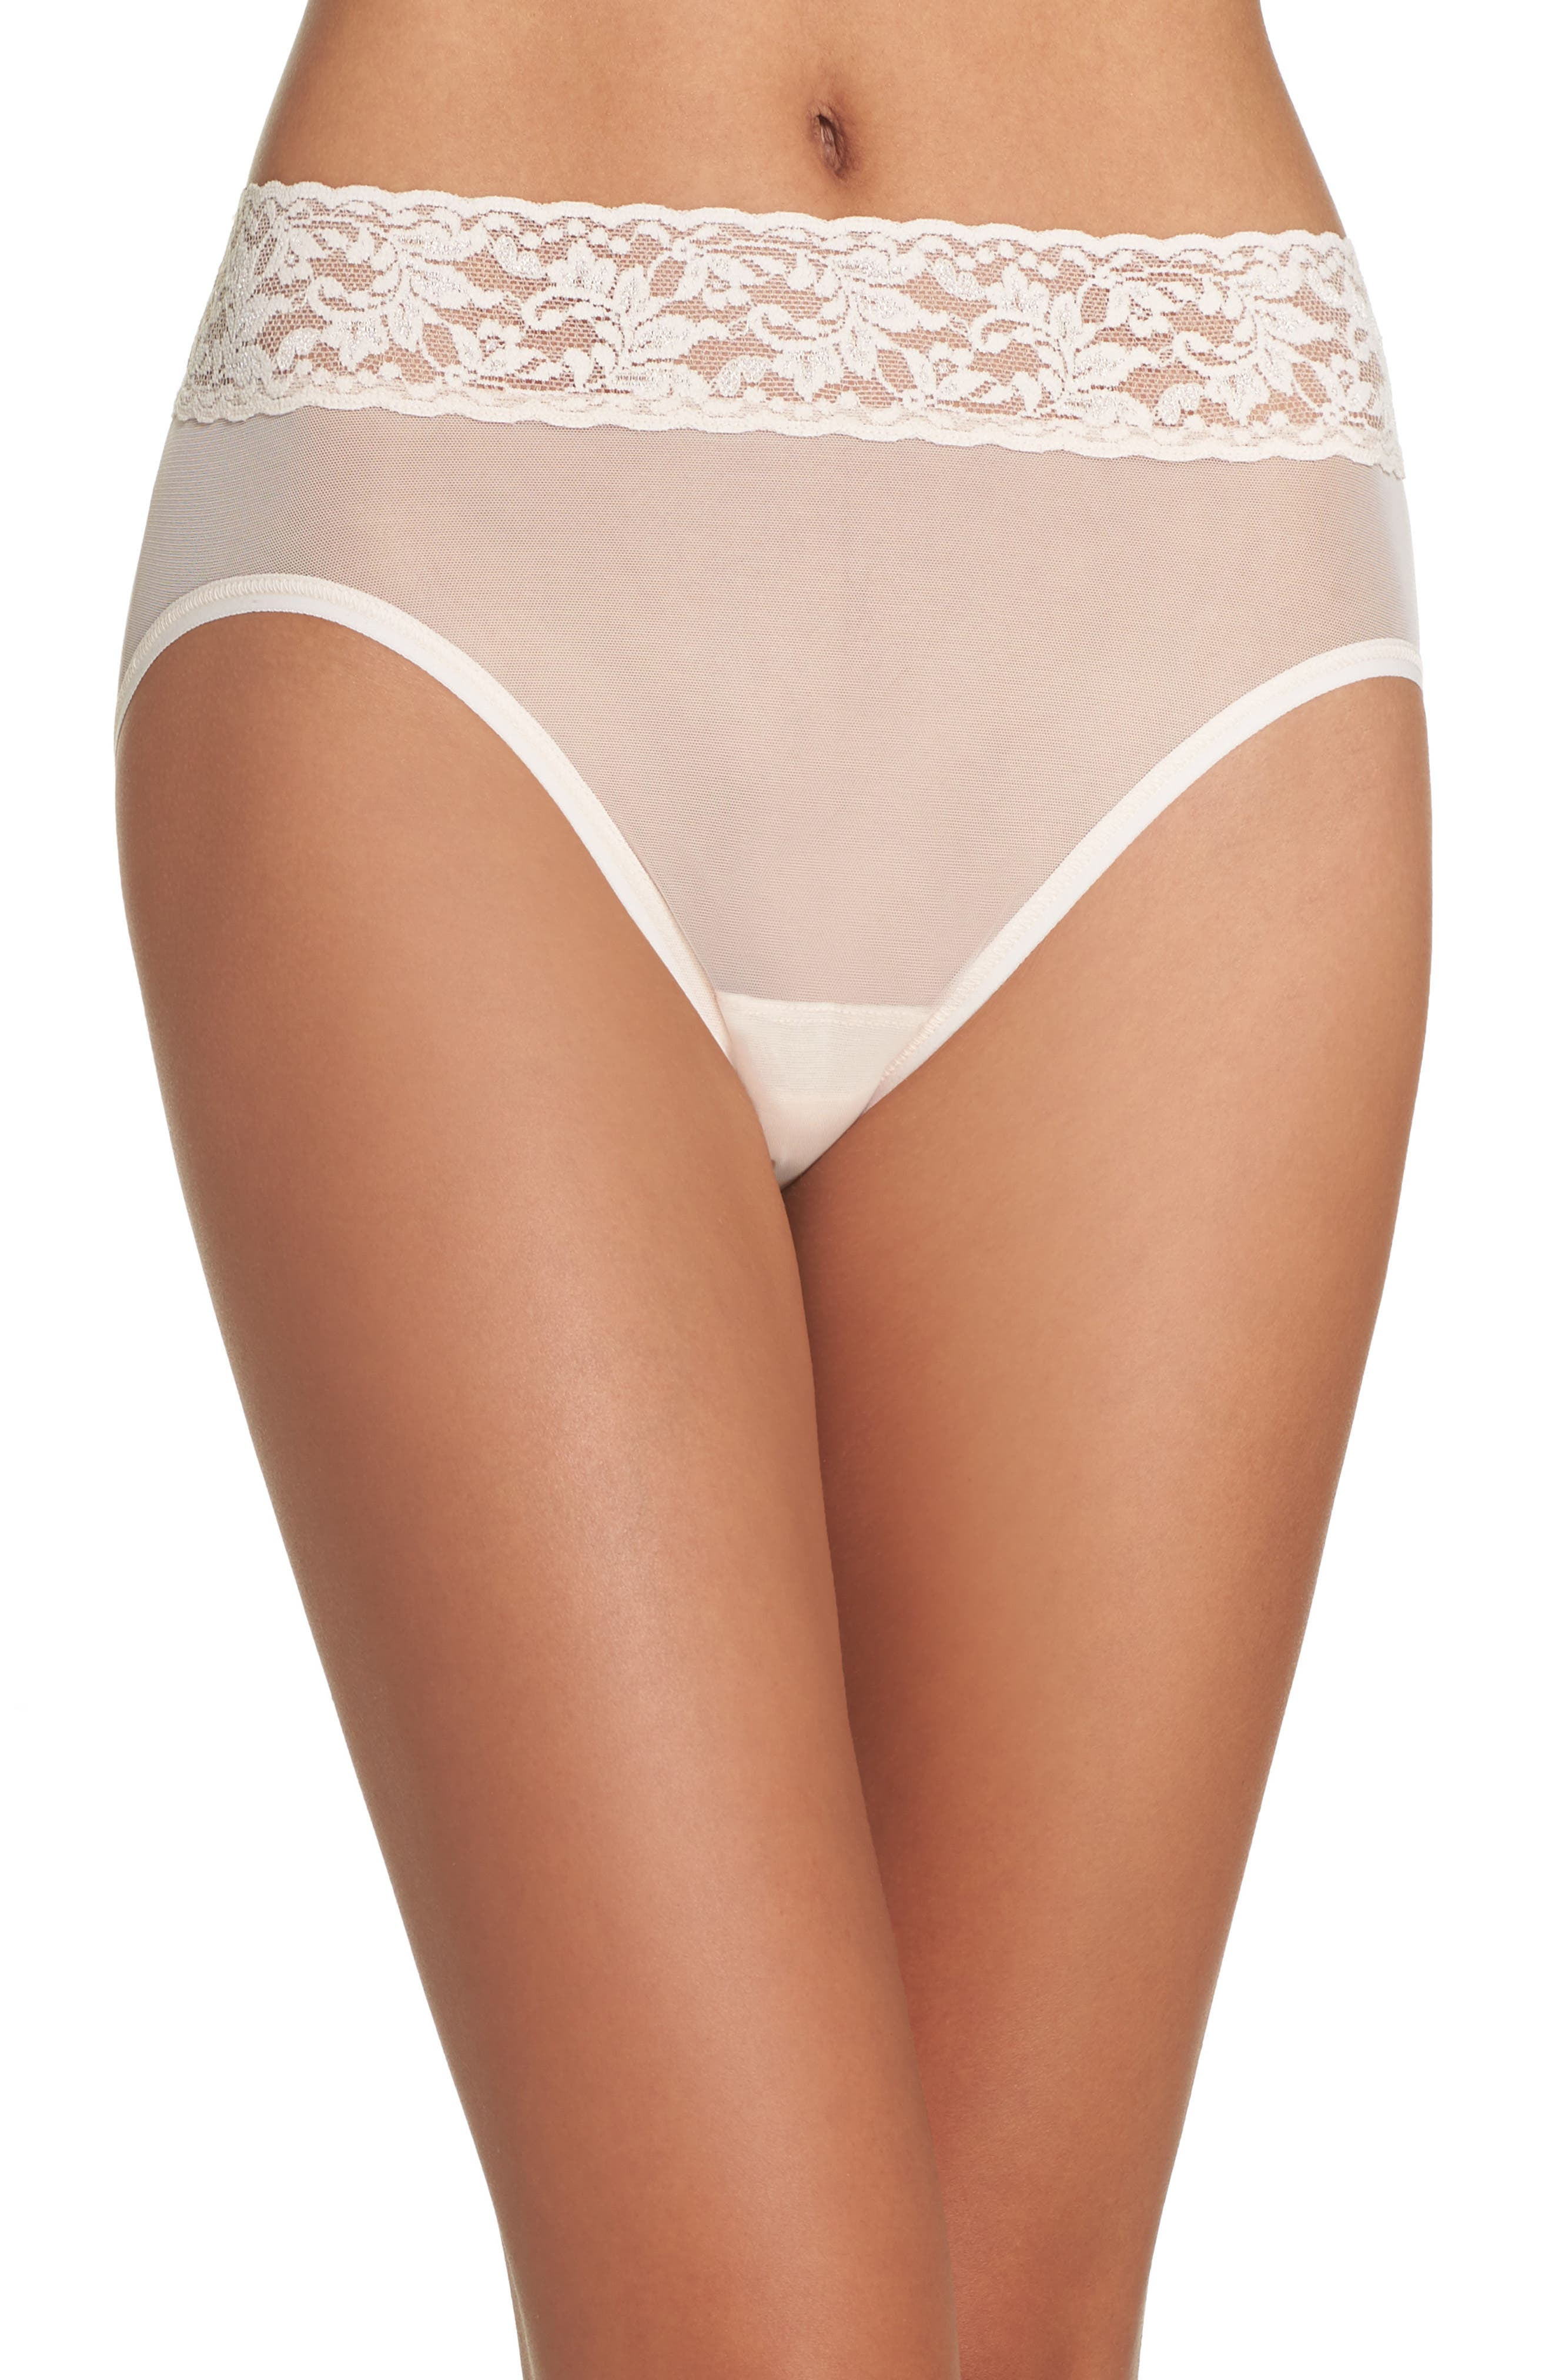 Hanky Panky Mesh French Briefs